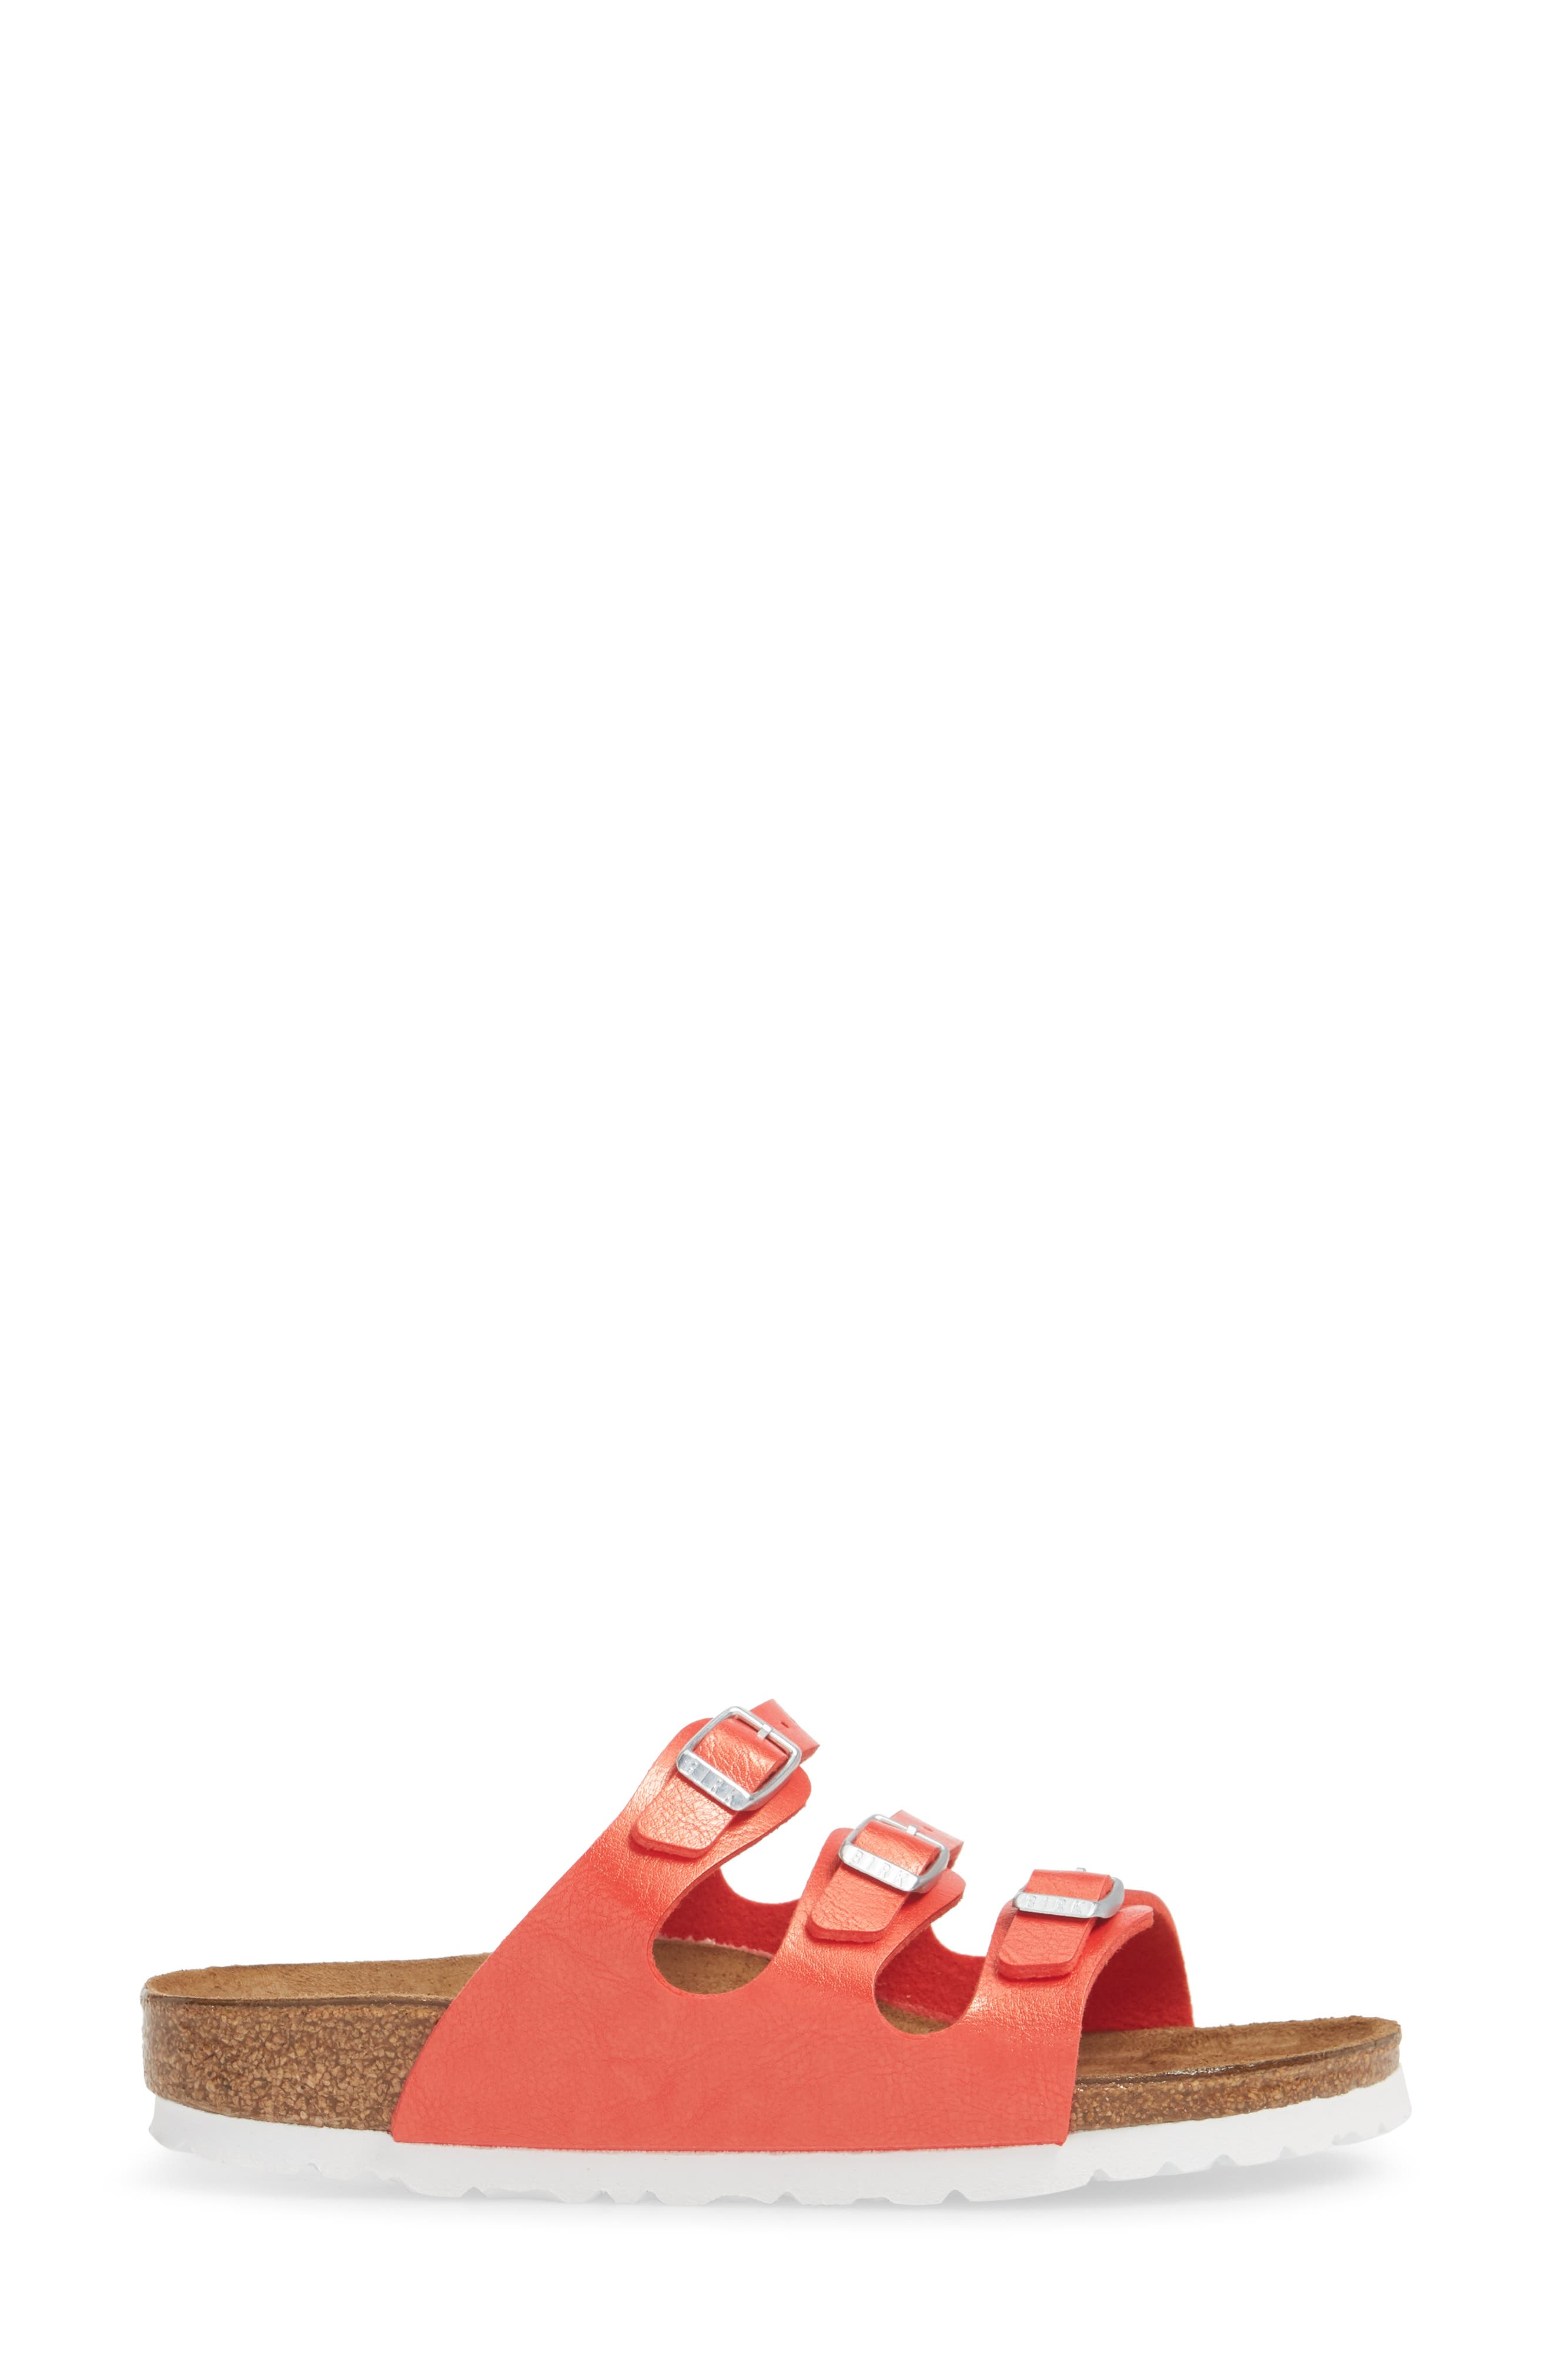 'Florida' Soft Footbed Sandal,                             Alternate thumbnail 3, color,                             Graceful Hibiscus Leather